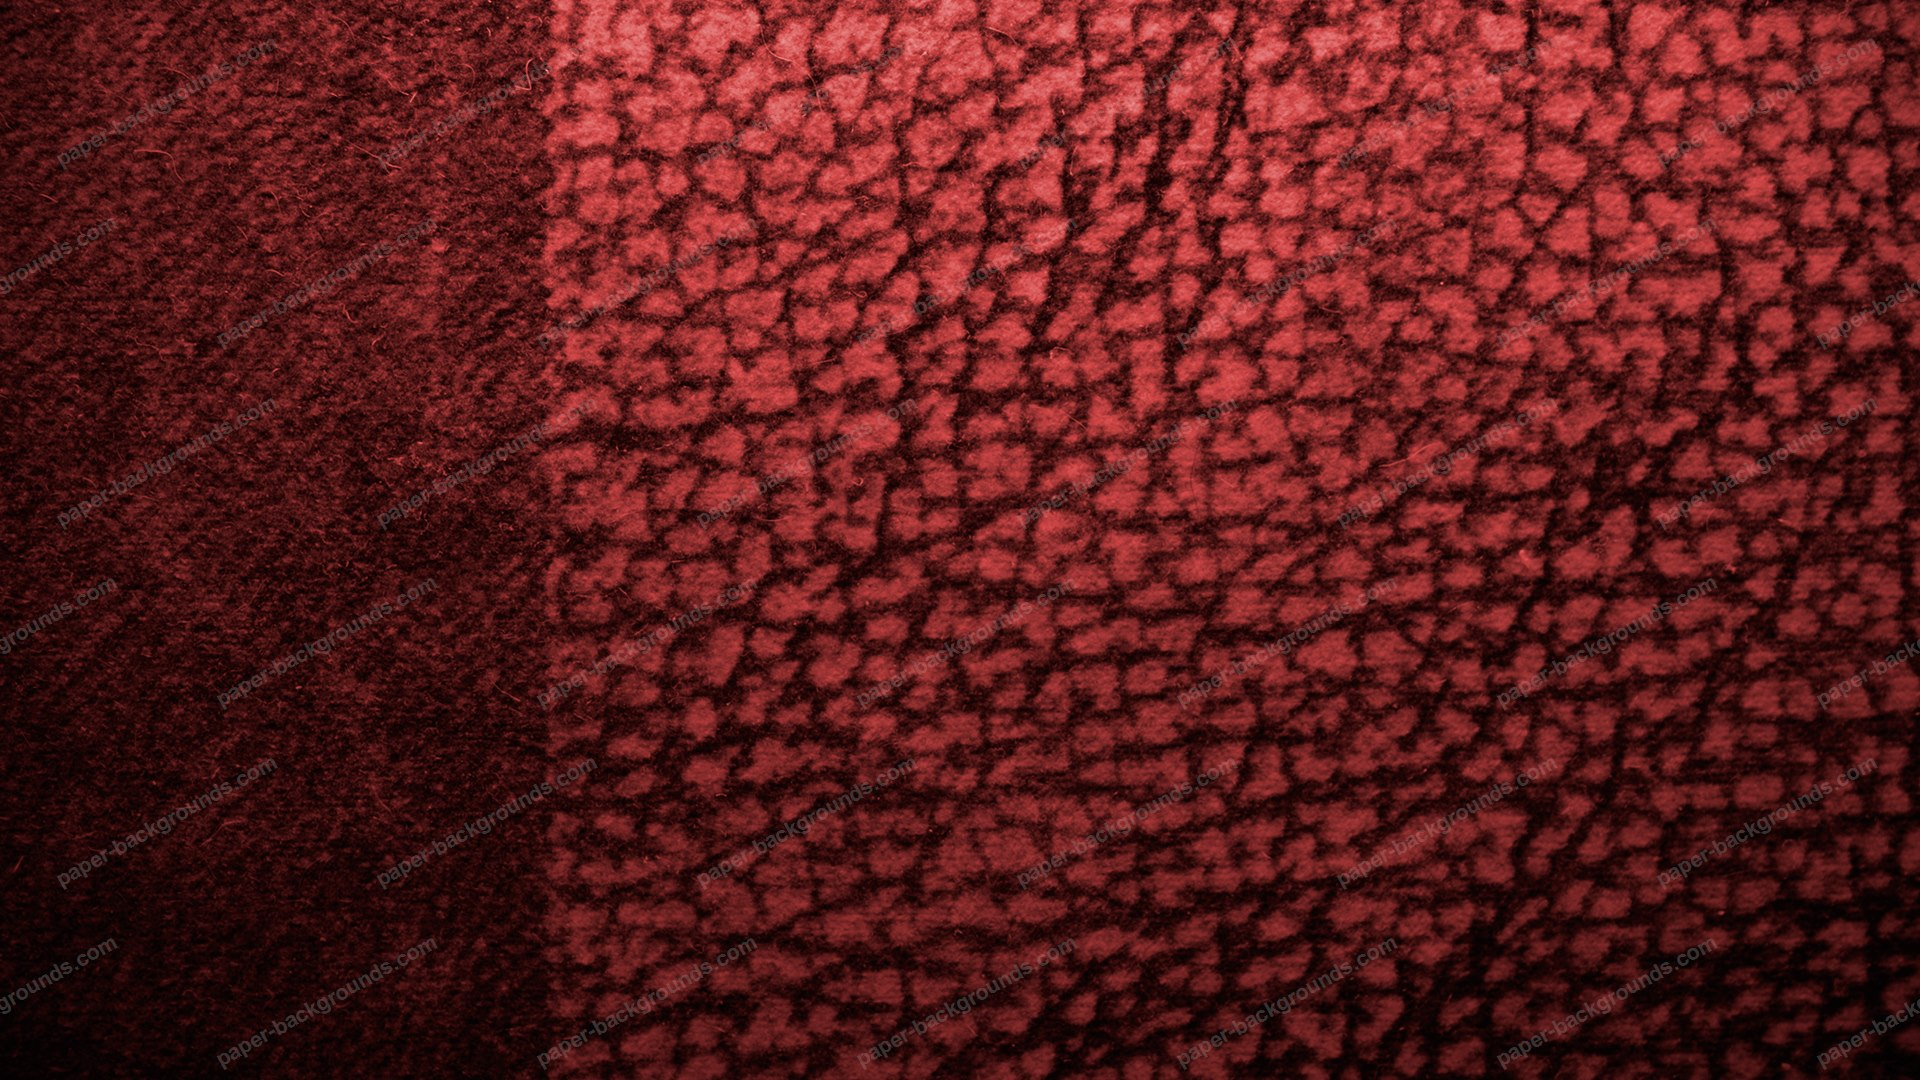 Red Fabric Design Background HD 1920 x 1080p